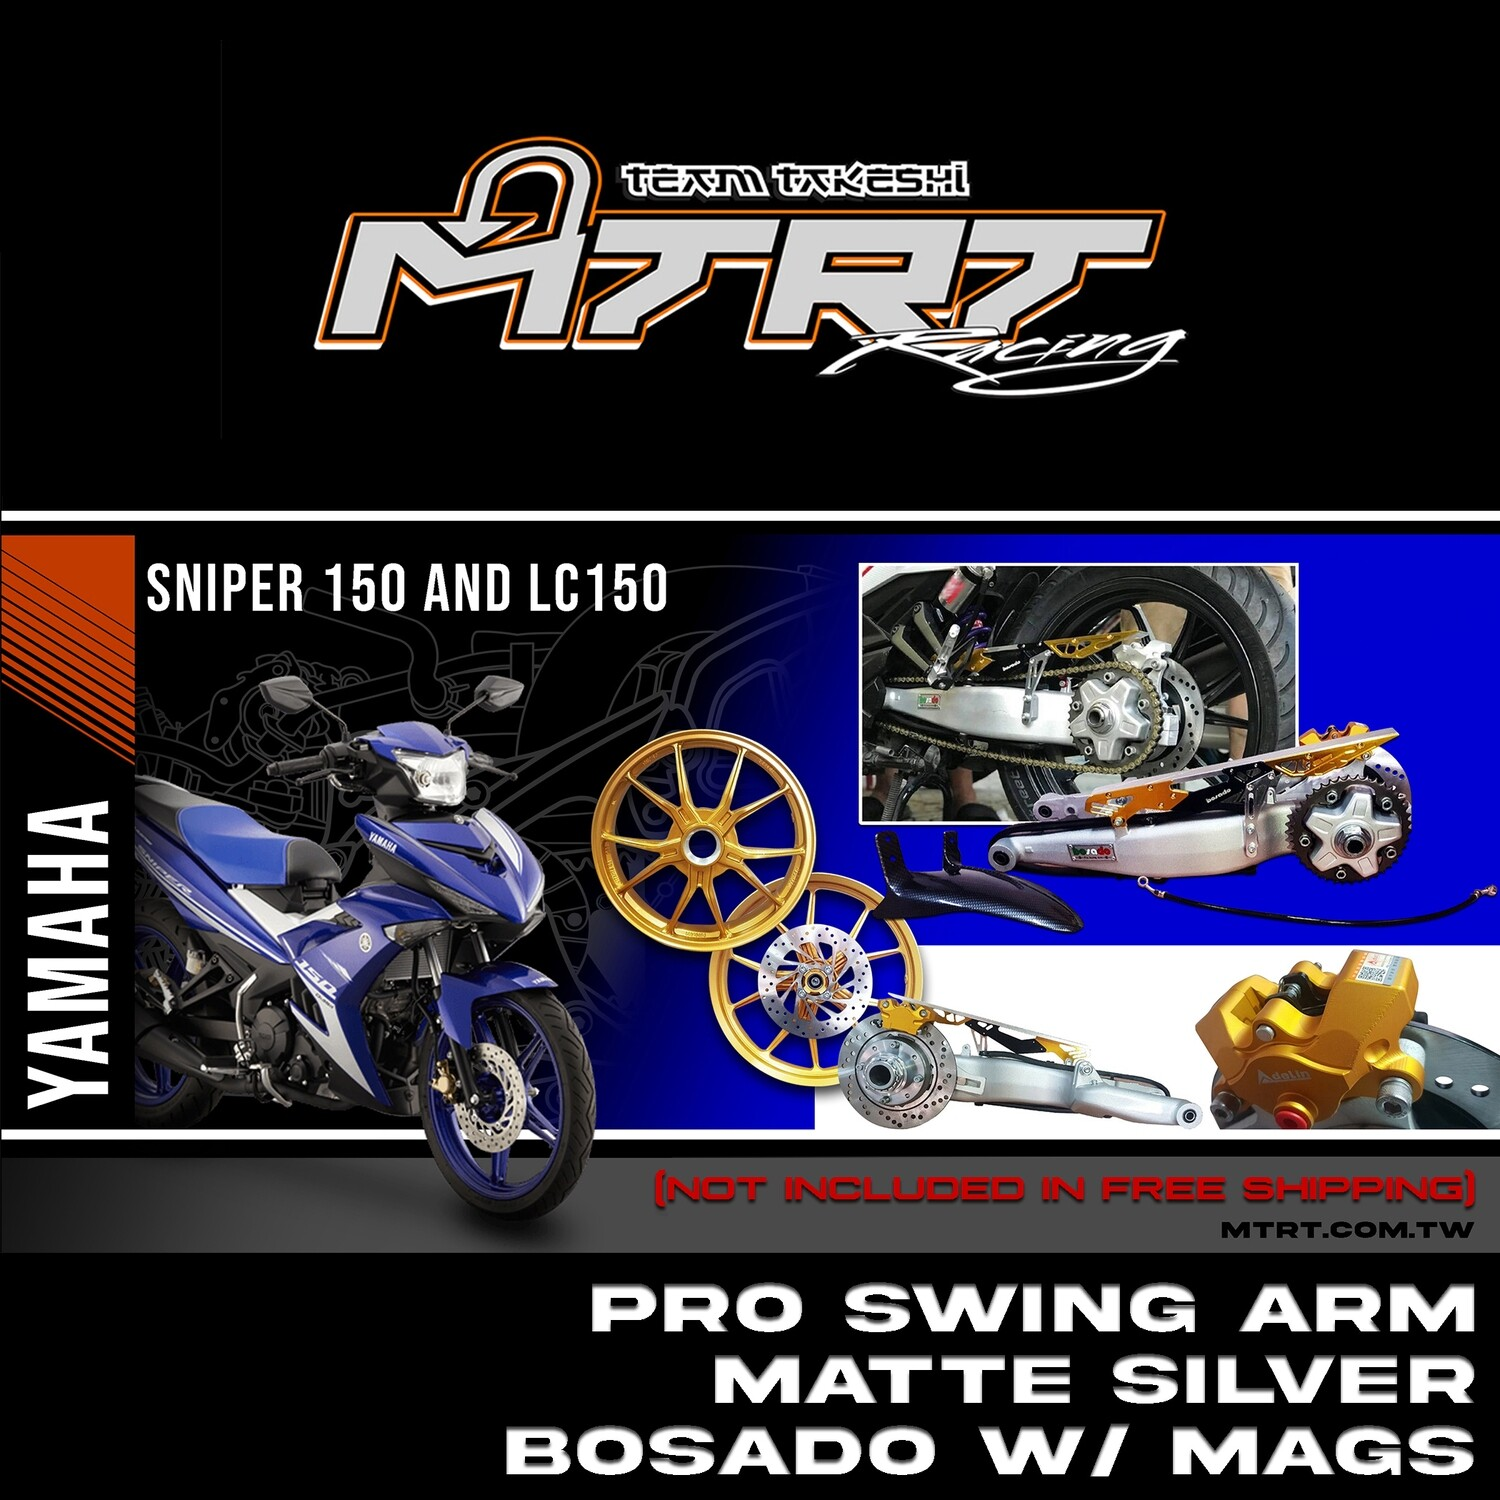 """PRO SWING ARM SILVER with gold """"BOSADO"""" MAGS  SNIPER Mx-KING"""